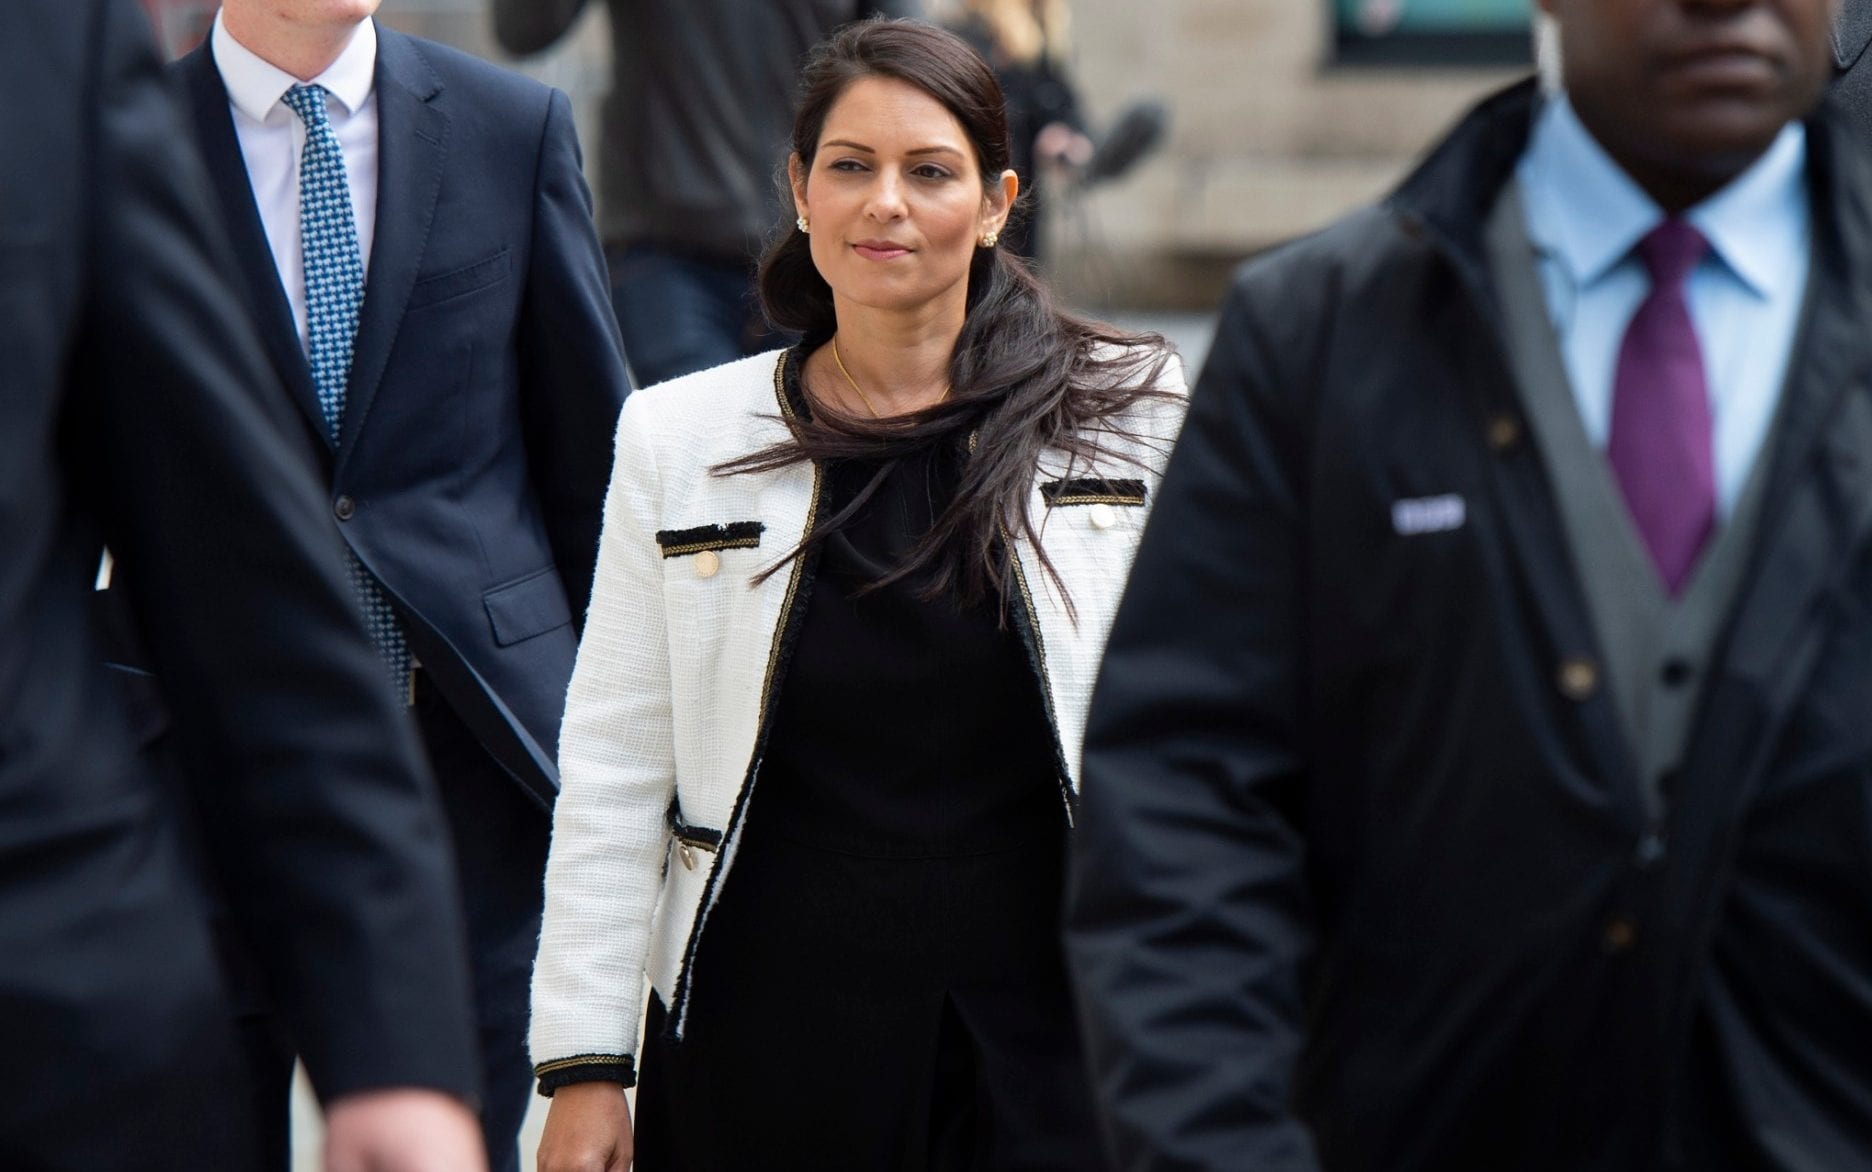 Priti Patel says Labour MPs who accused her of gaslighting black people were being racist